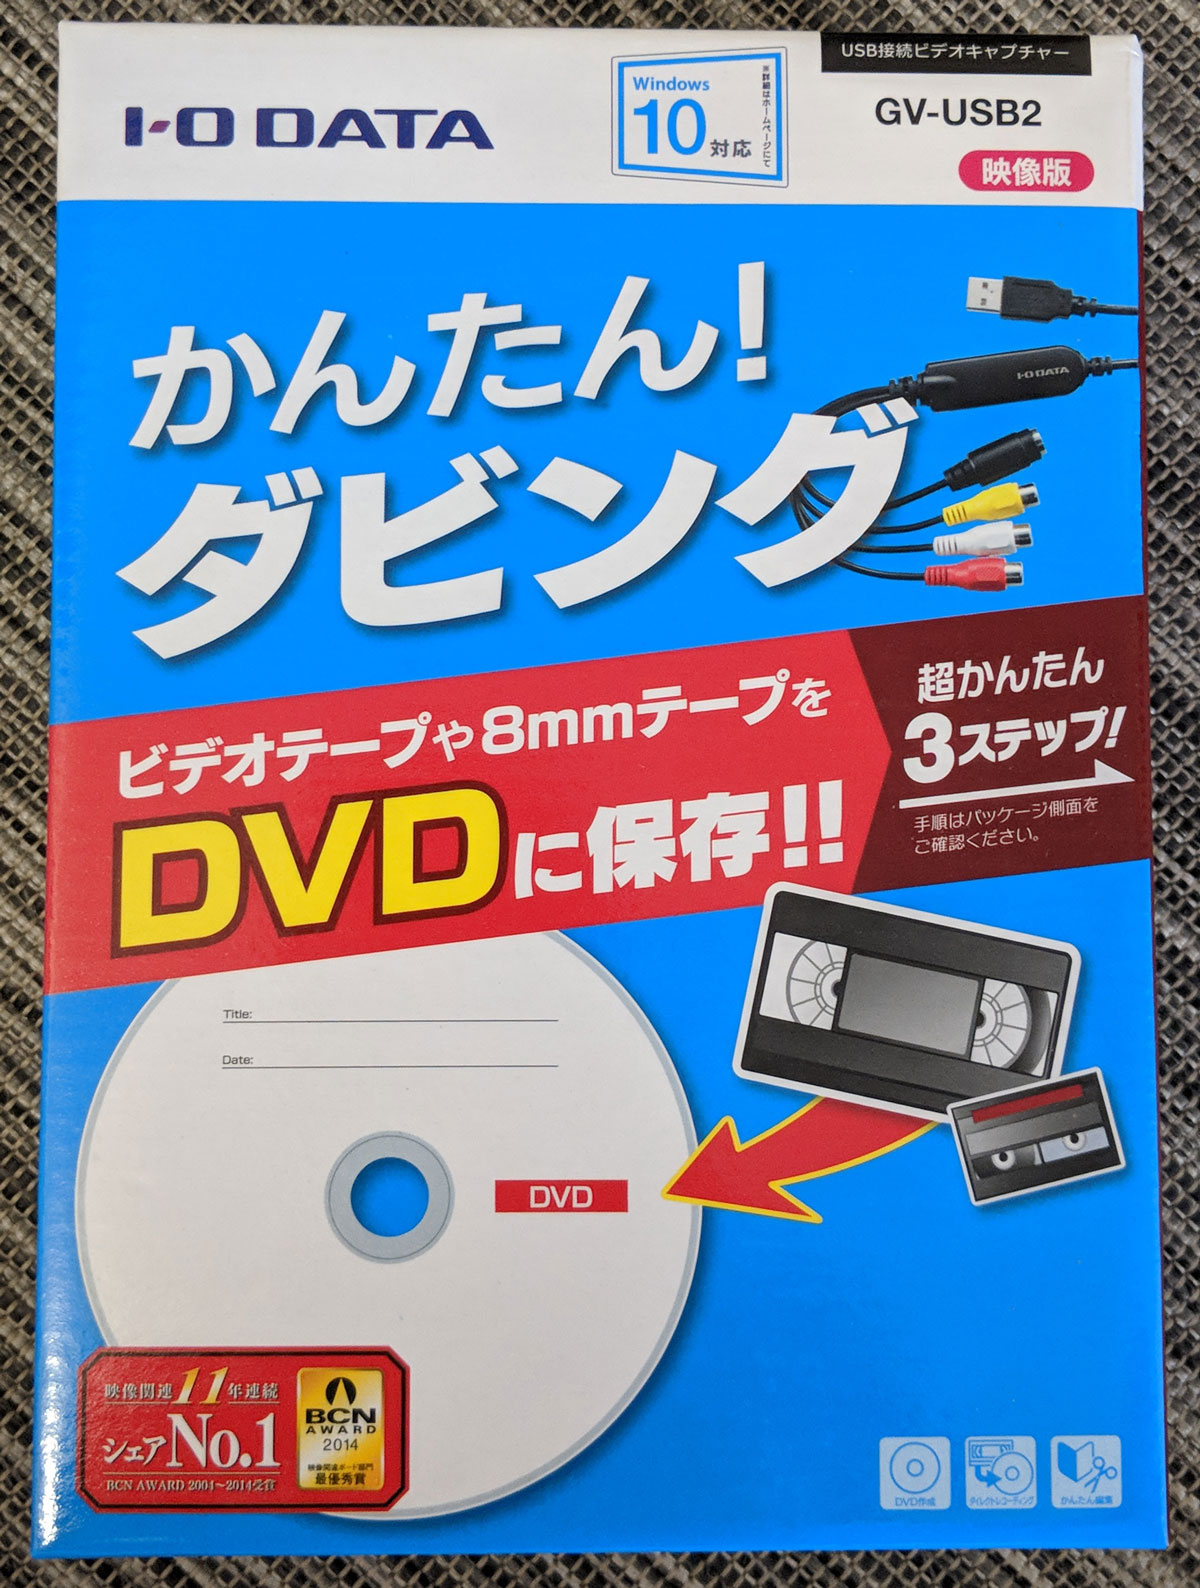 GV-USB2 video capture device